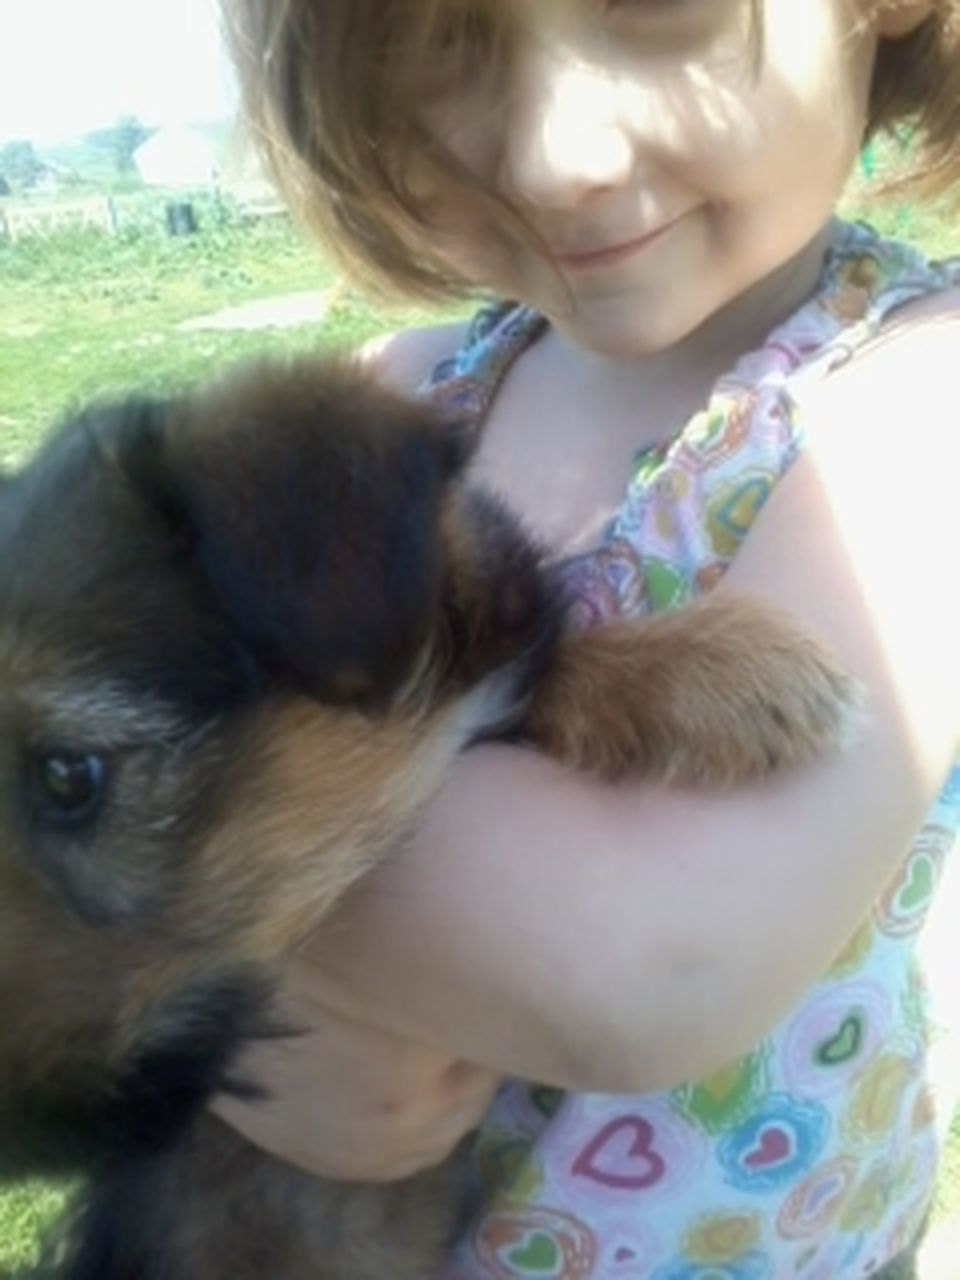 pets, one animal, children only, dog, child, childhood, animal themes, domestic animals, one girl only, one person, girls, friendship, animal, cute, people, blond hair, day, puppy, mammal, close-up, smiling, outdoors, adult